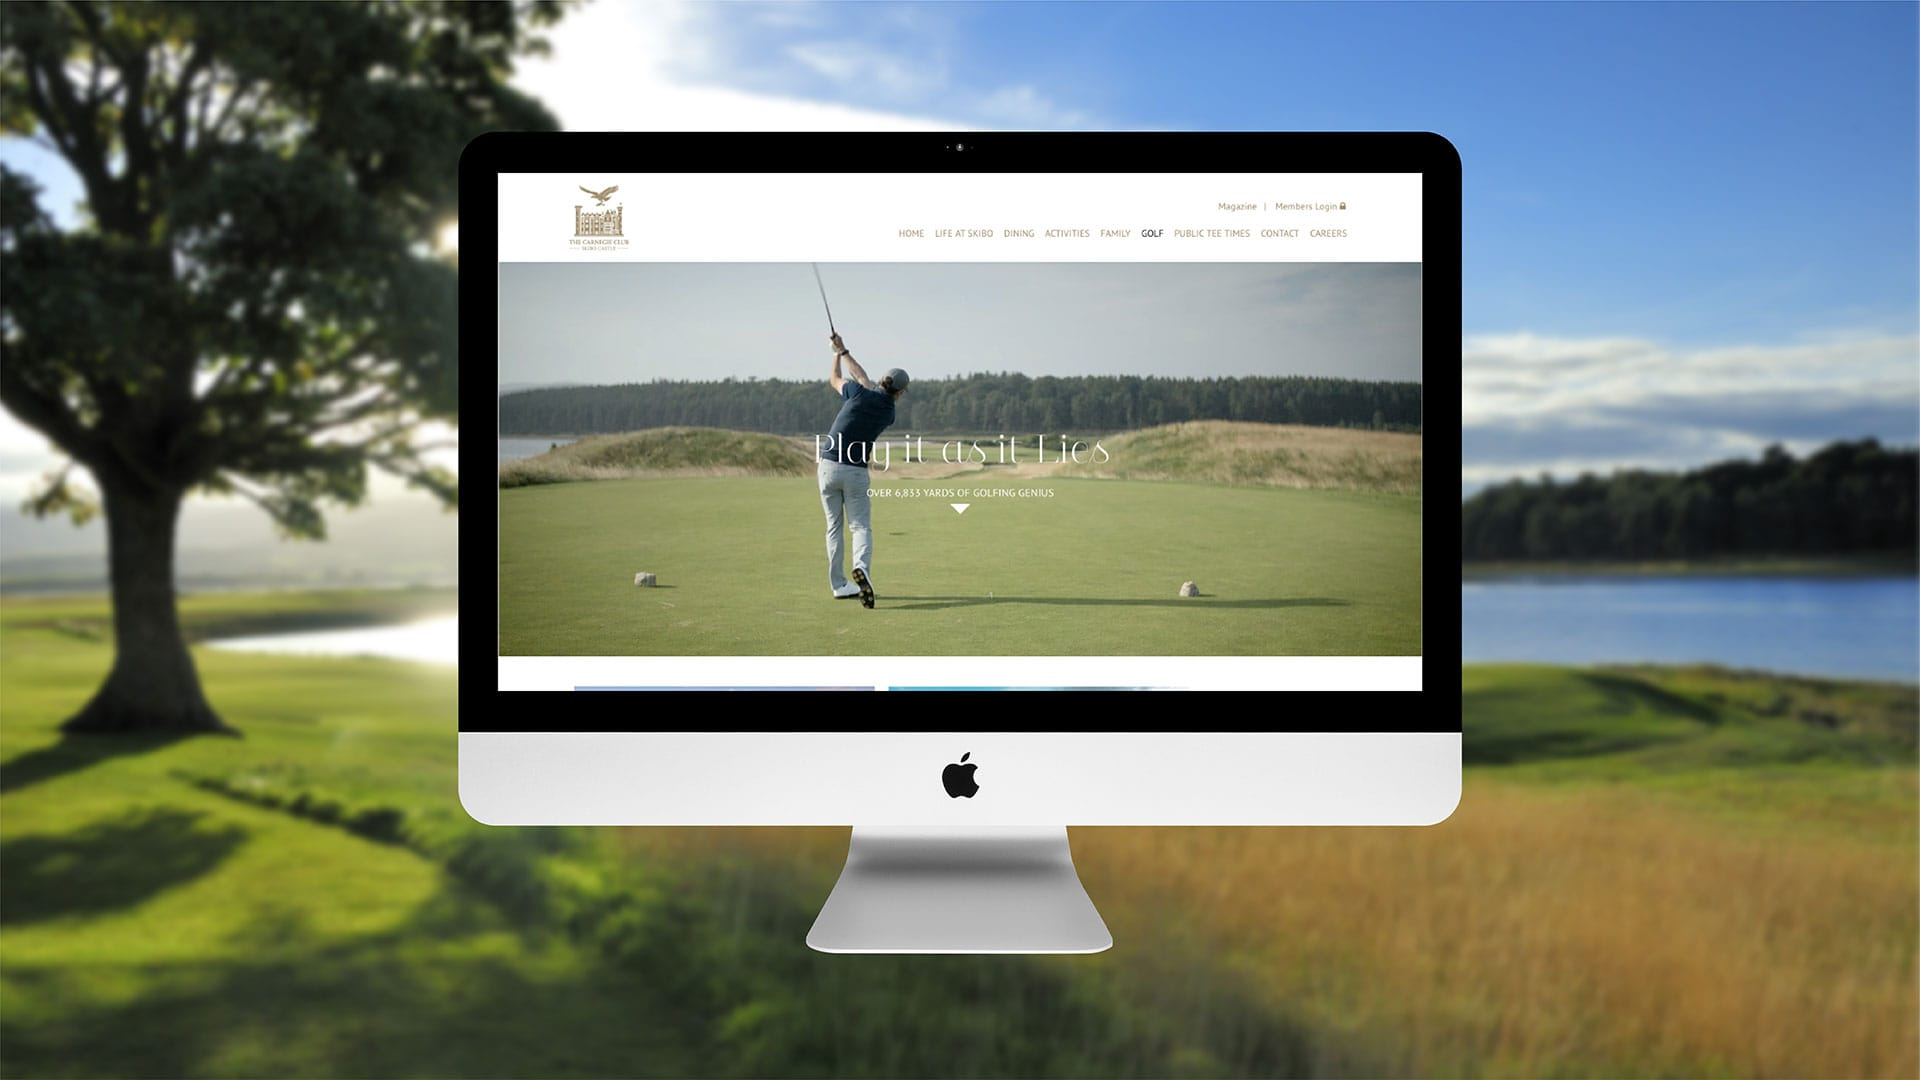 Apple desktop showing golfer on the course at Skibo